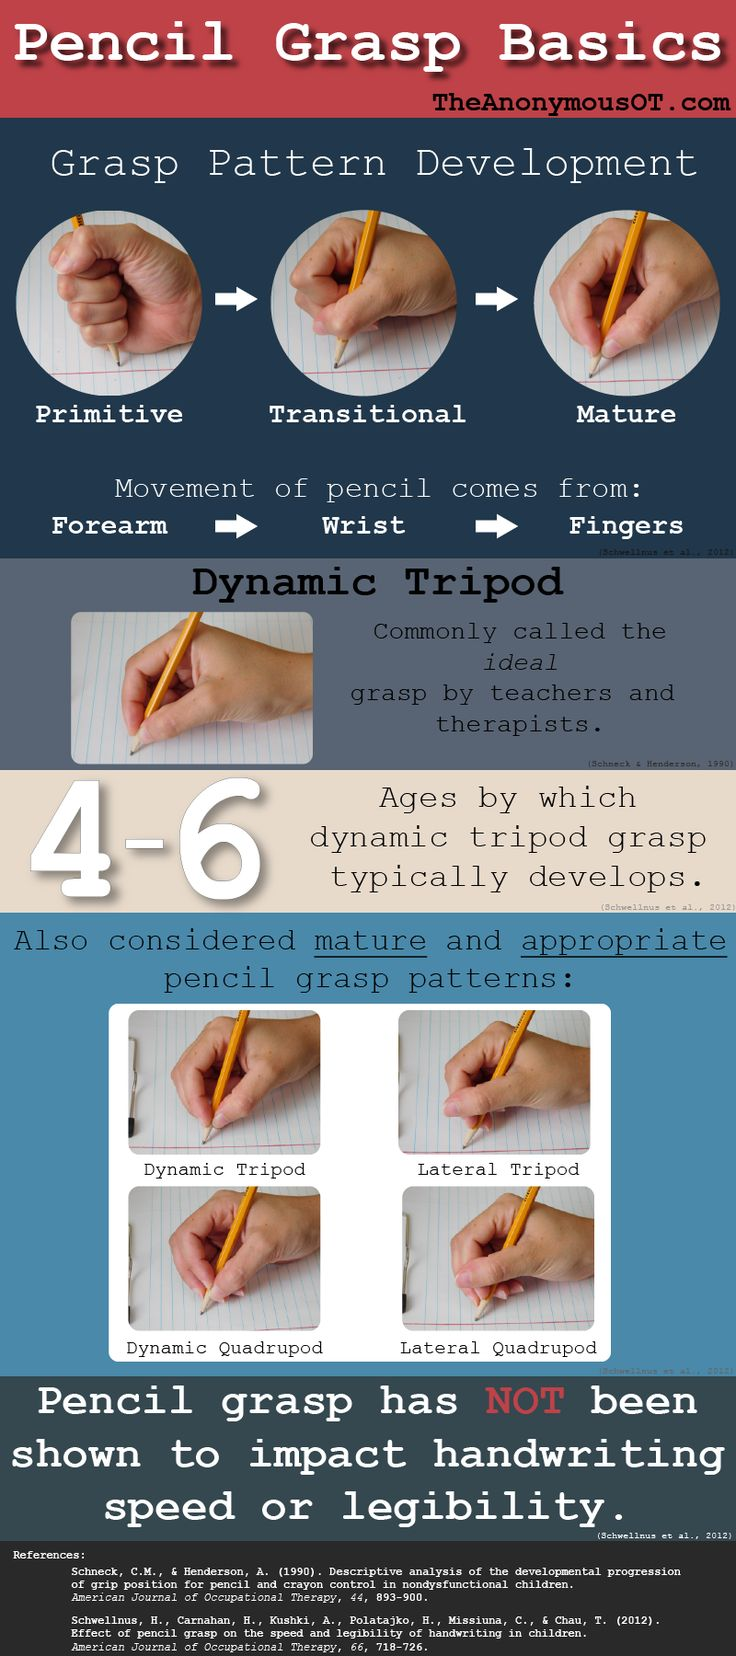 Pencil Grasp Basics from The Anonymous OT